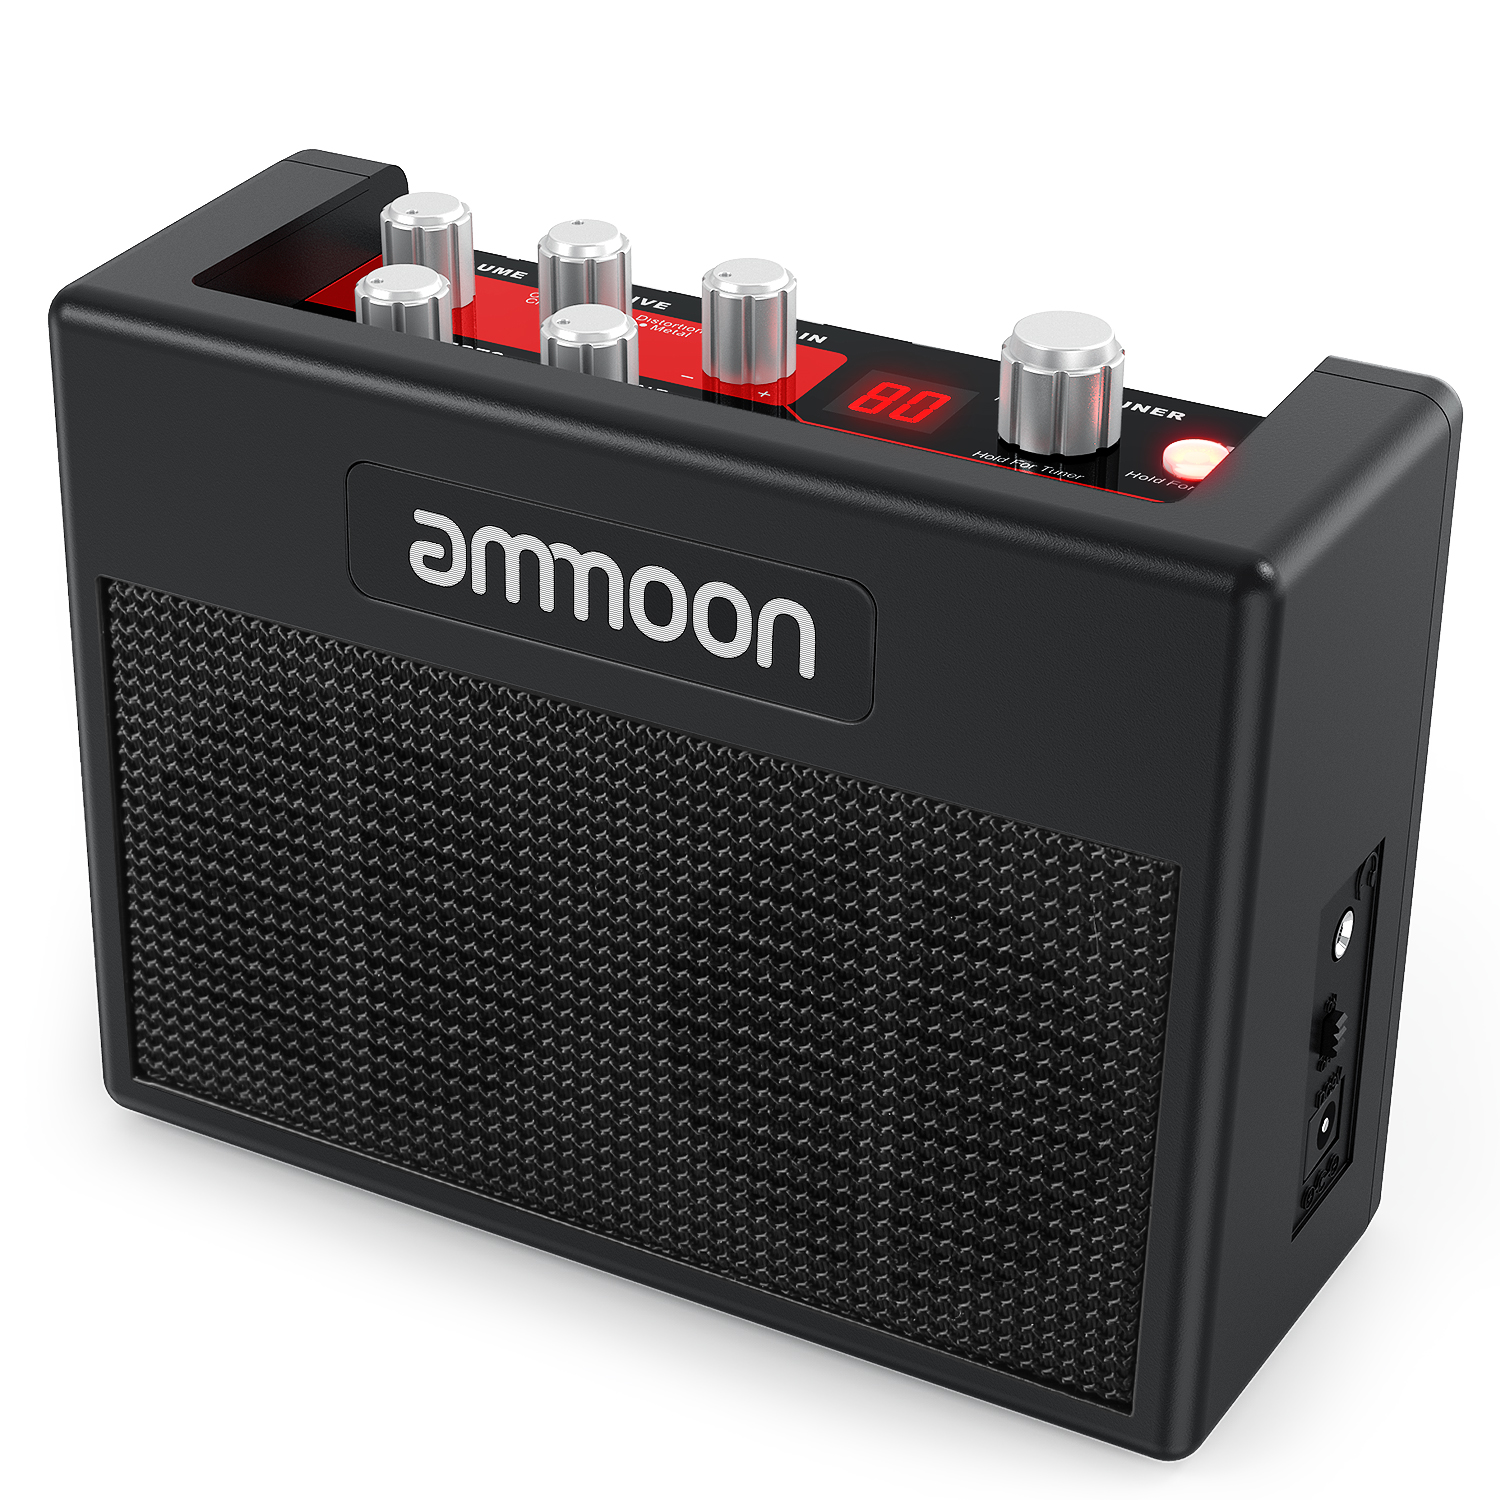 ammoon POCKAMP Guitar Amplifier Built-in Multi-effects 80 Drum Rhythms Support Tuner Tap Tempo Function with Power Adapterammoon POCKAMP Guitar Amplifier Built-in Multi-effects 80 Drum Rhythms Support Tuner Tap Tempo Function with Power Adapter